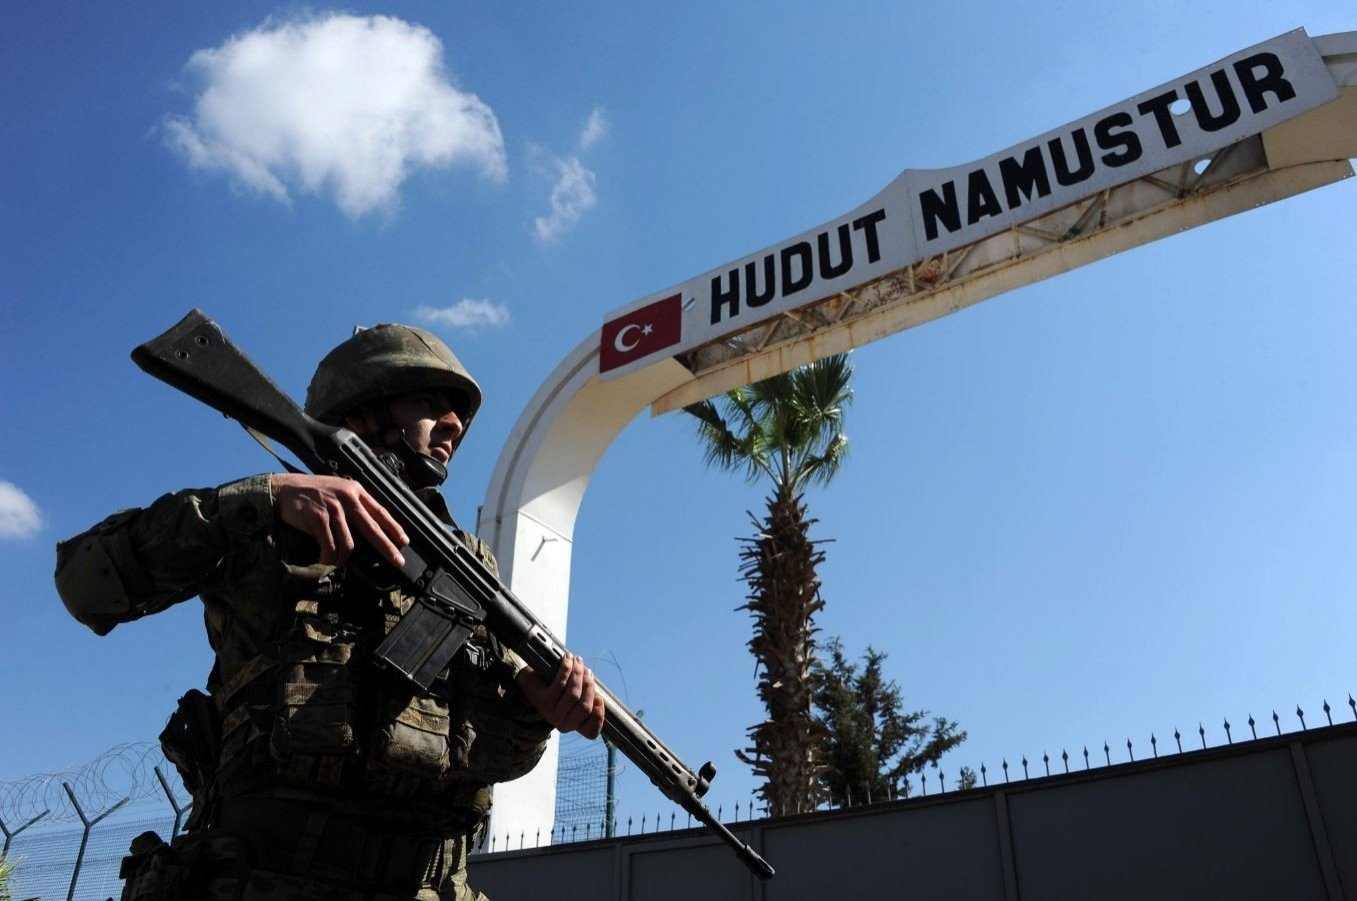 A border guard is seen keeping watch at the border in Turkey's southern Hatay province, Feb. 15, 2021. (IHA Photo)